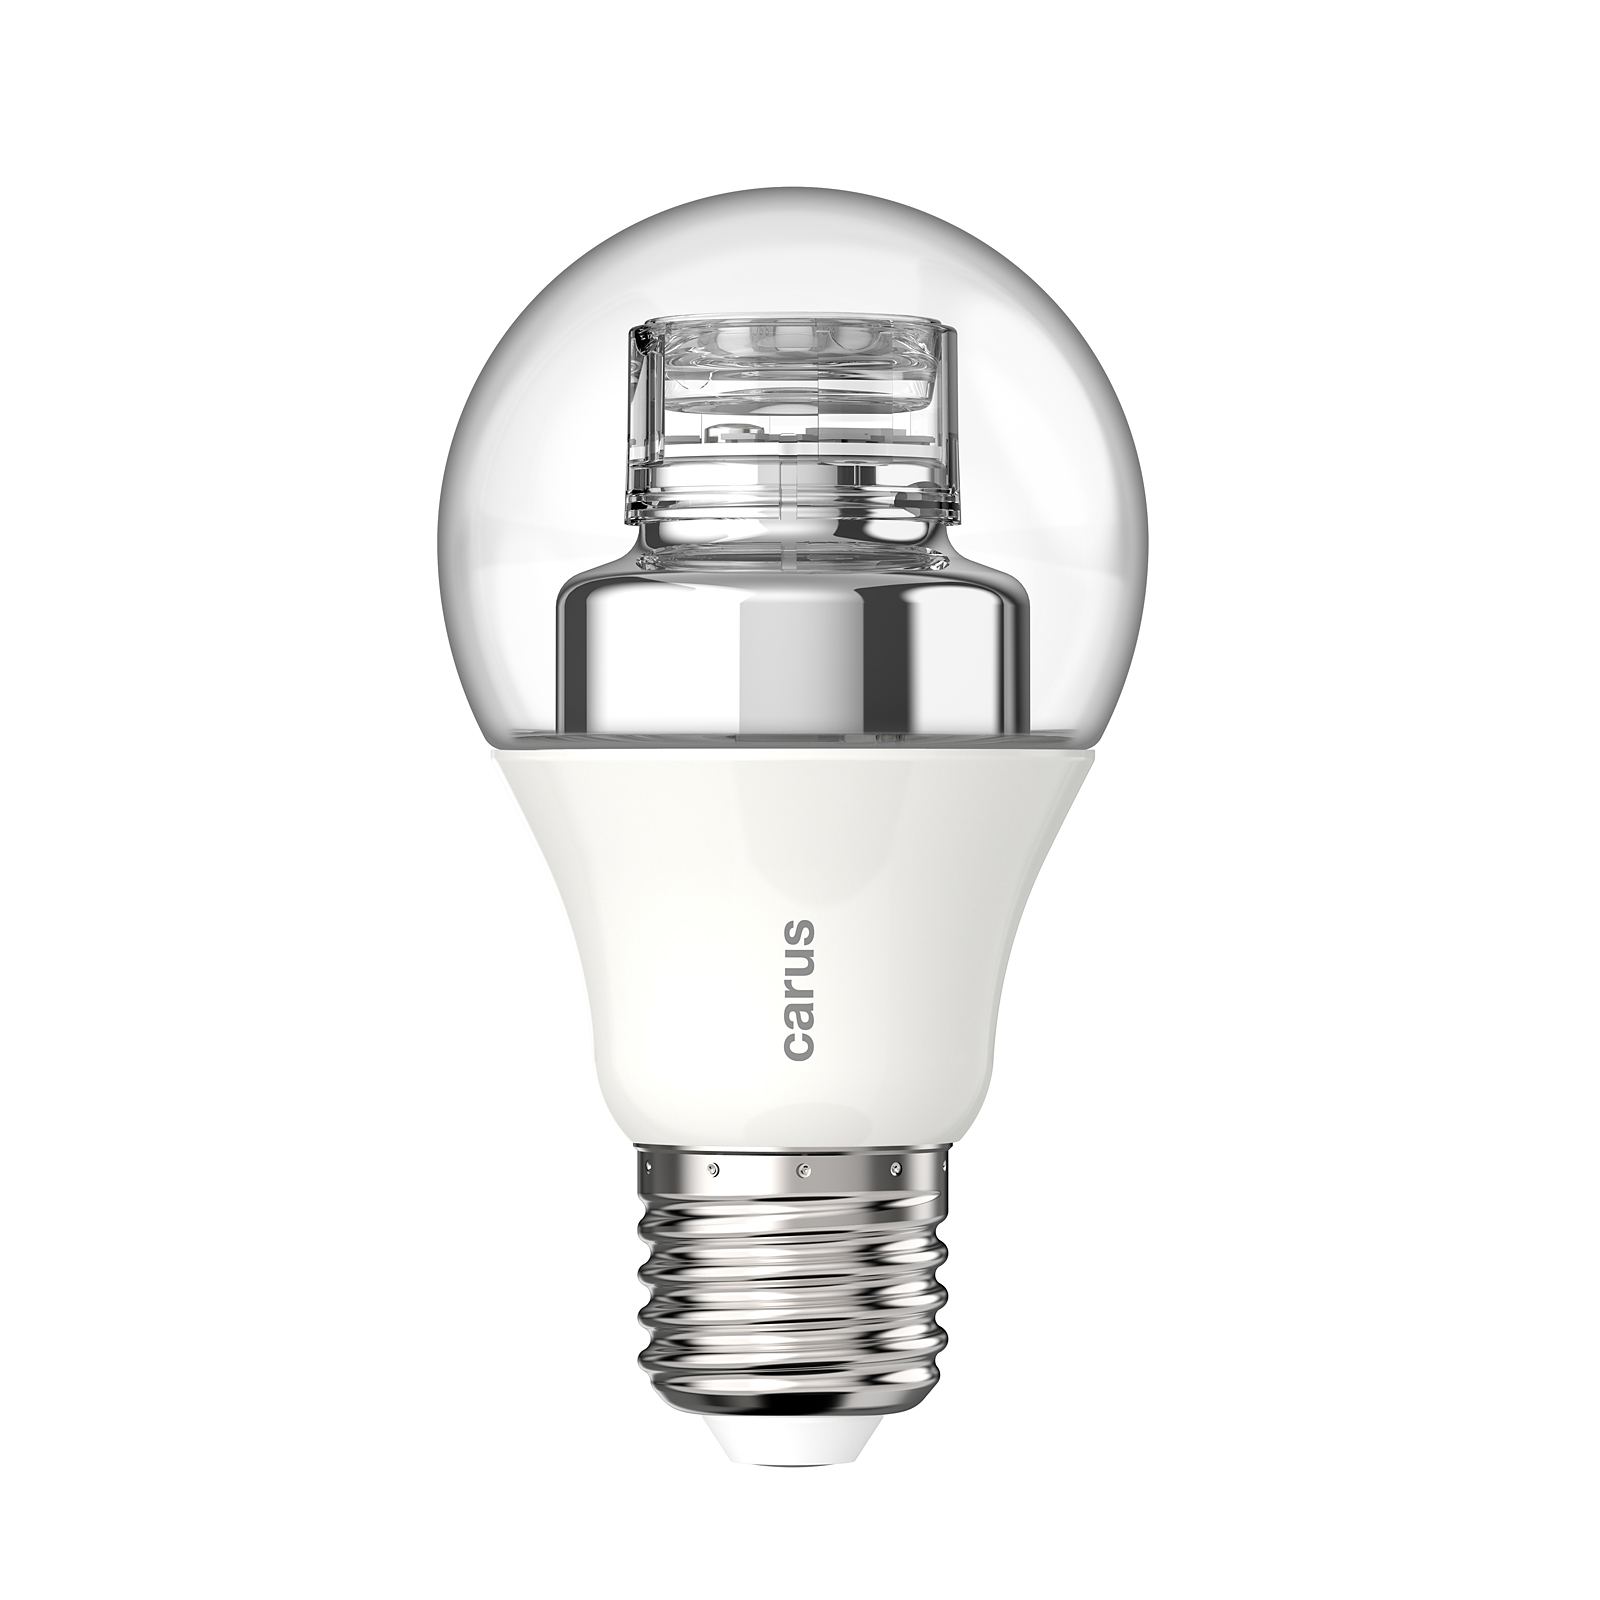 Led dimmbar perfect osram e led superstar classic p birne for Lampe 600 watt